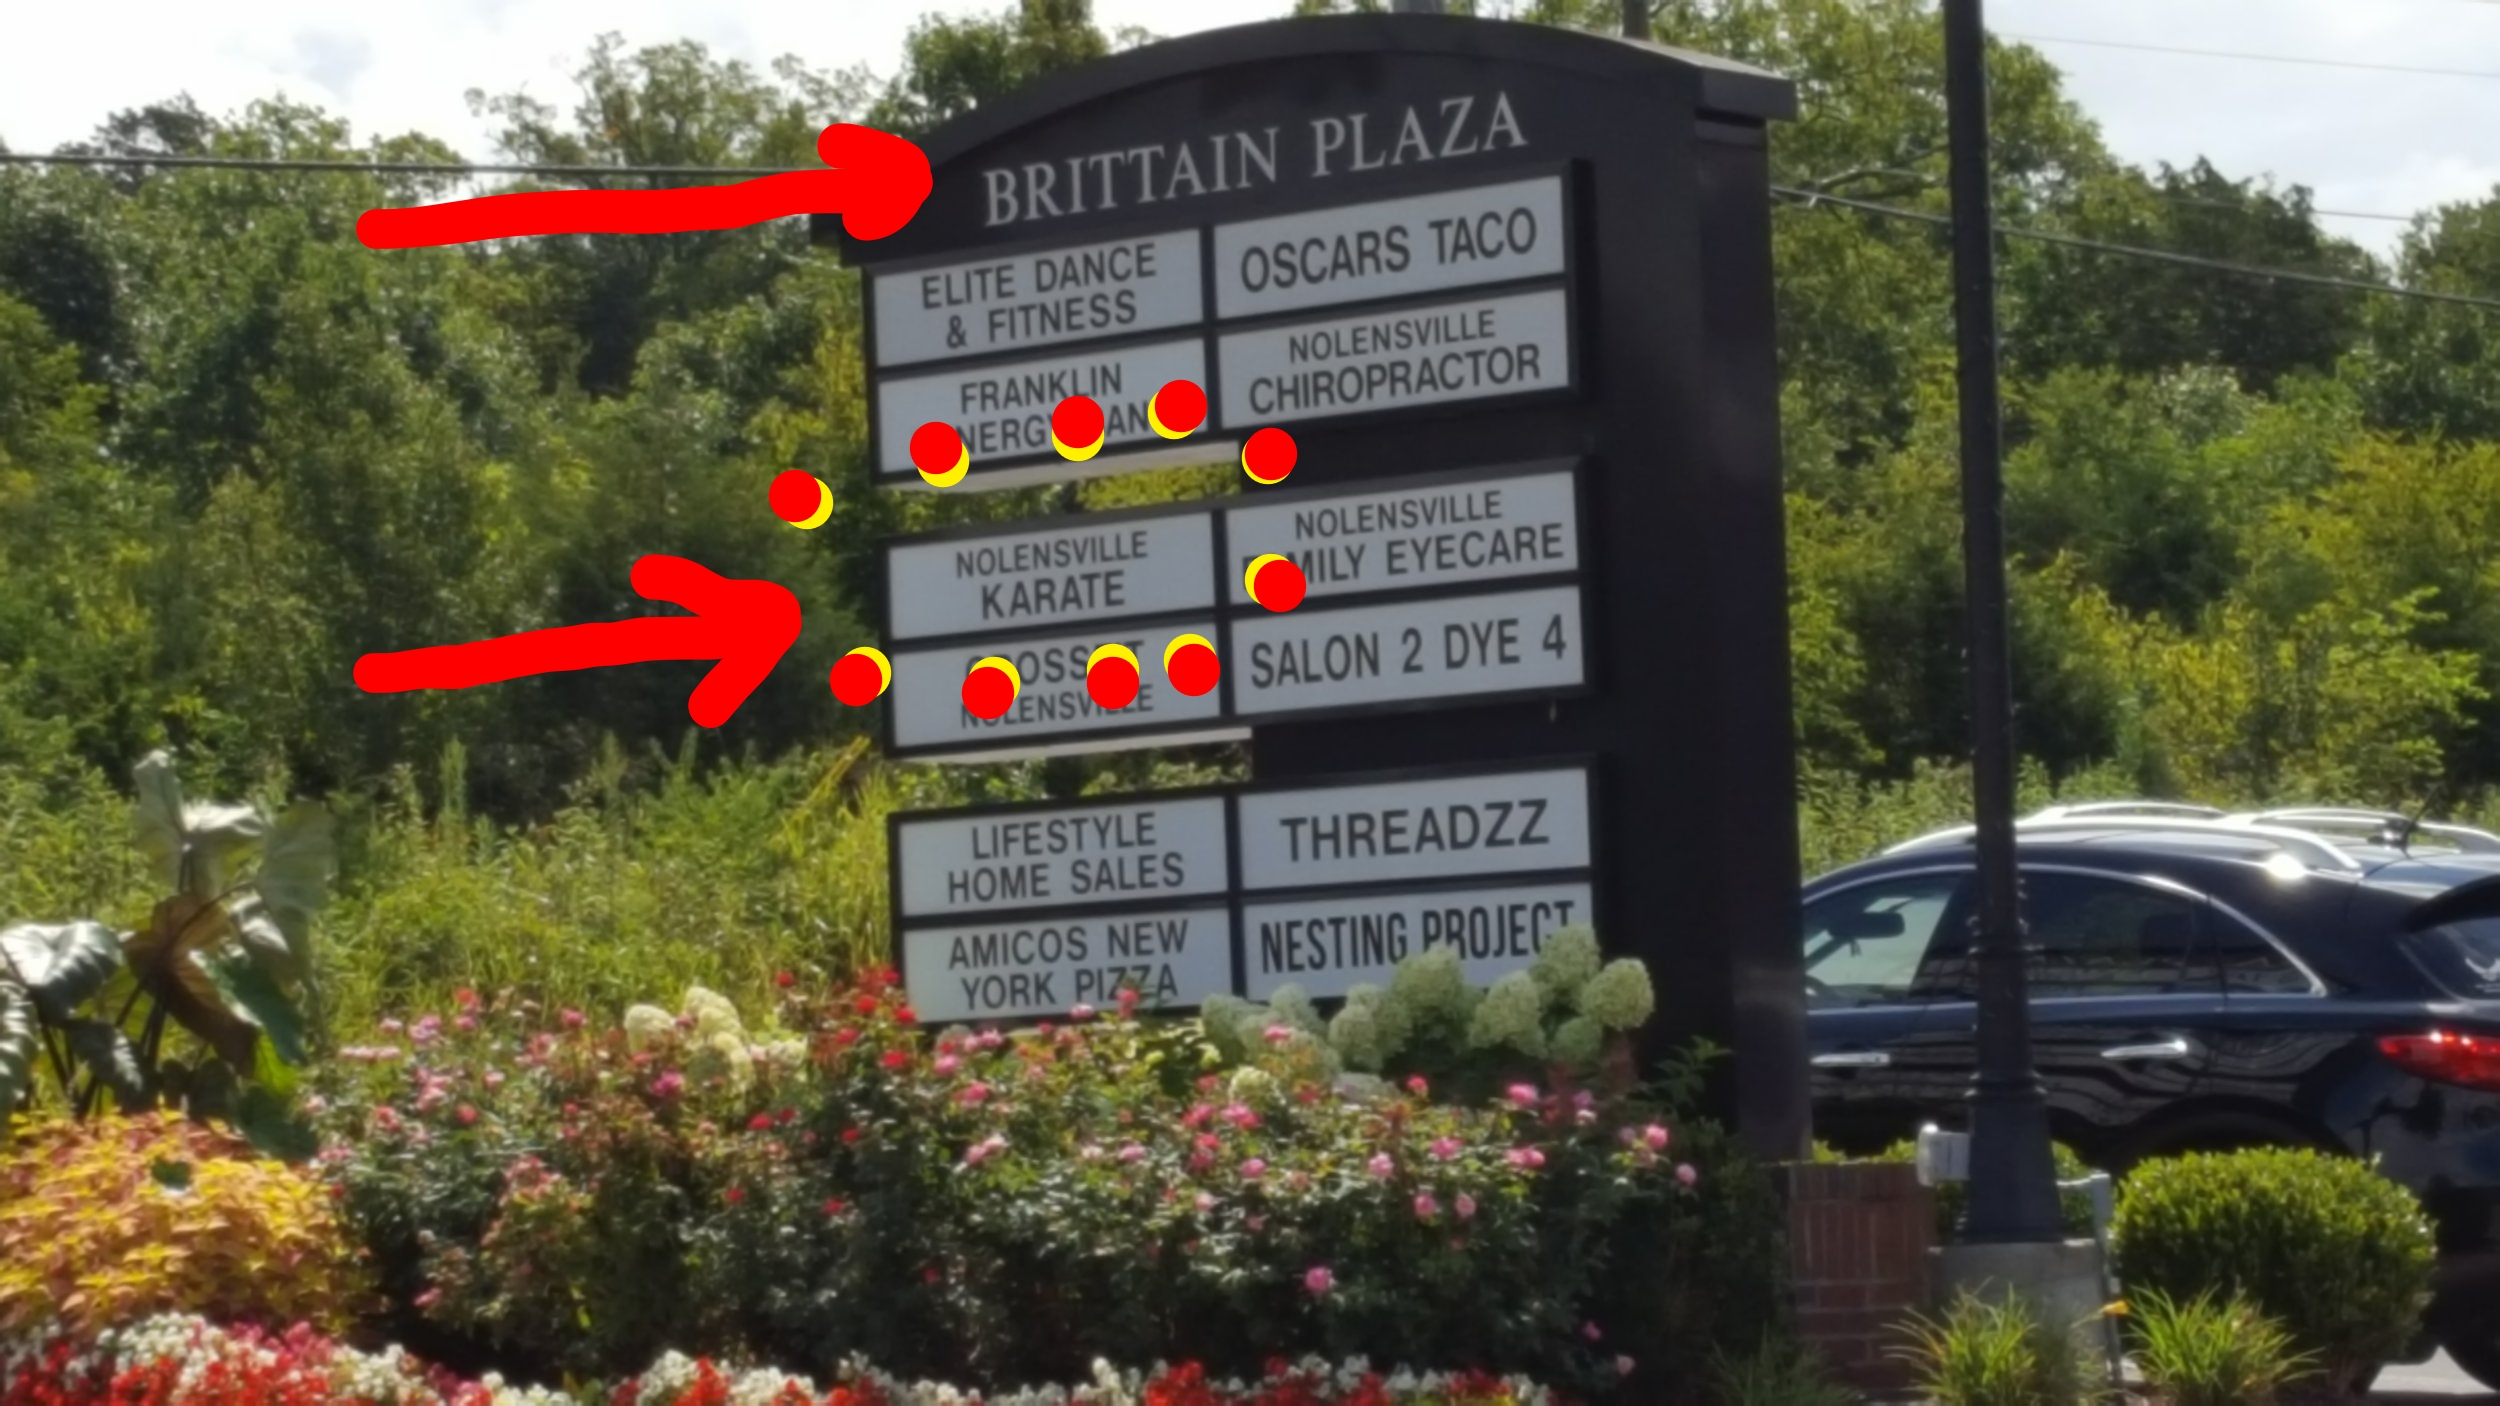 We're at 7177 Nolensville Rd. Suite 5B.. in the Brittain Plaza. OUR SIGN STILL SAYS << NOLENSVILLE KARATE >> but we're a Peaceful Warrior Dojo and we're down stairs and around behind the building. Please call (615) 776-4010 if you have trouble finding us.